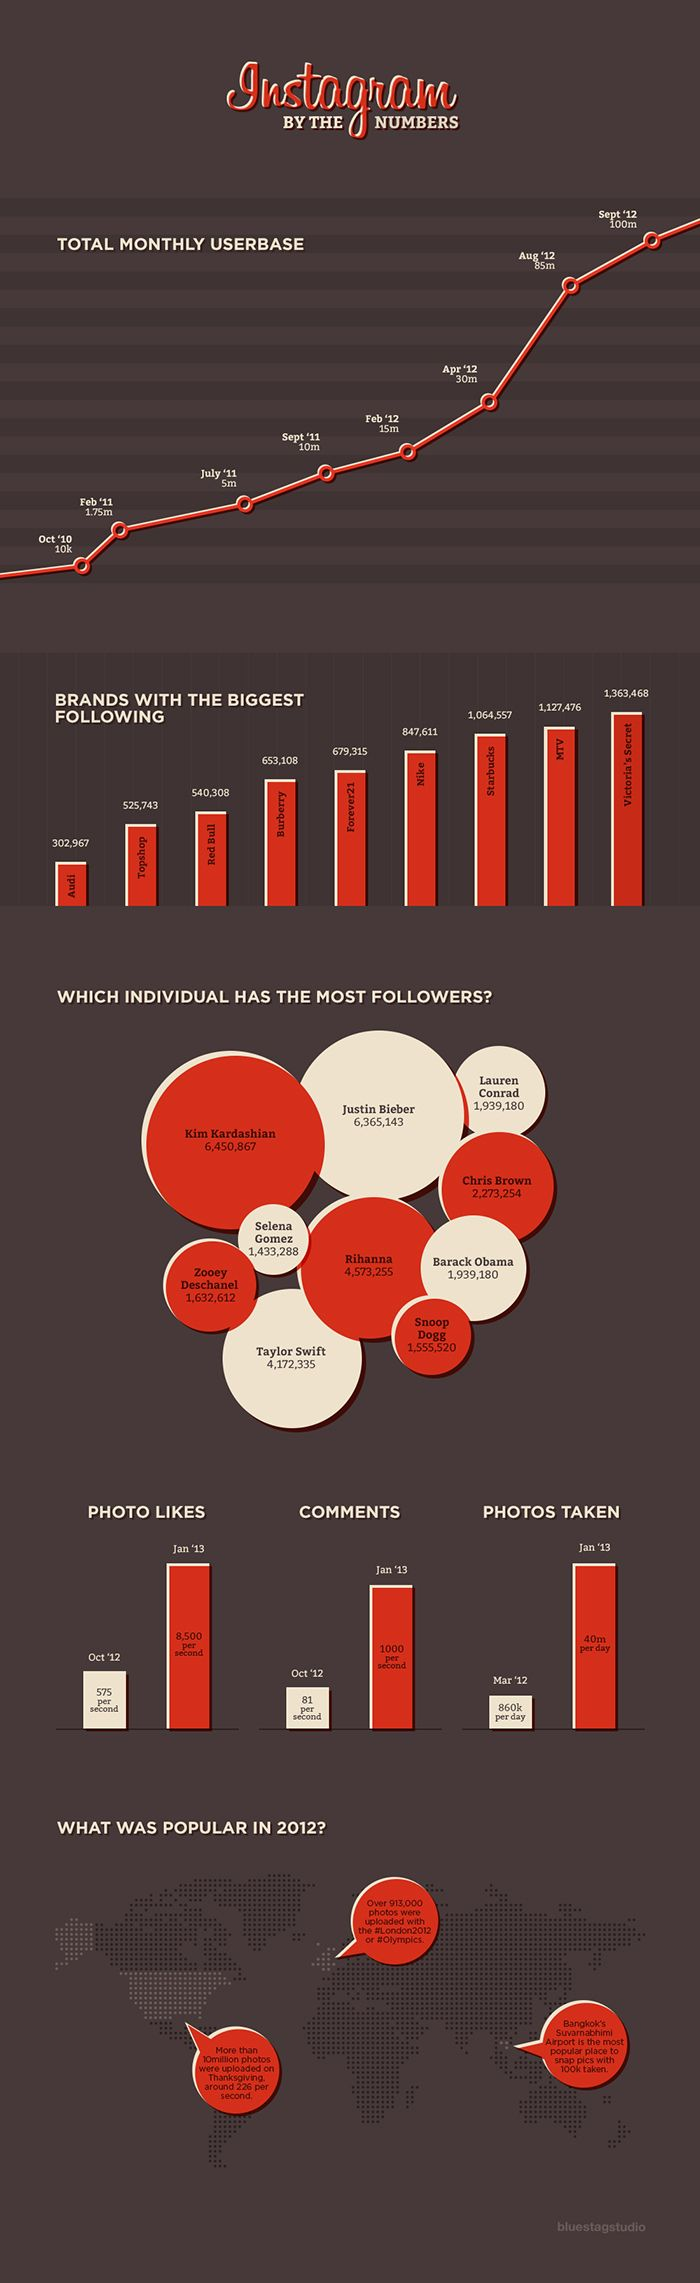 Instagram by the numbers #infografia #infographic #socialmedia